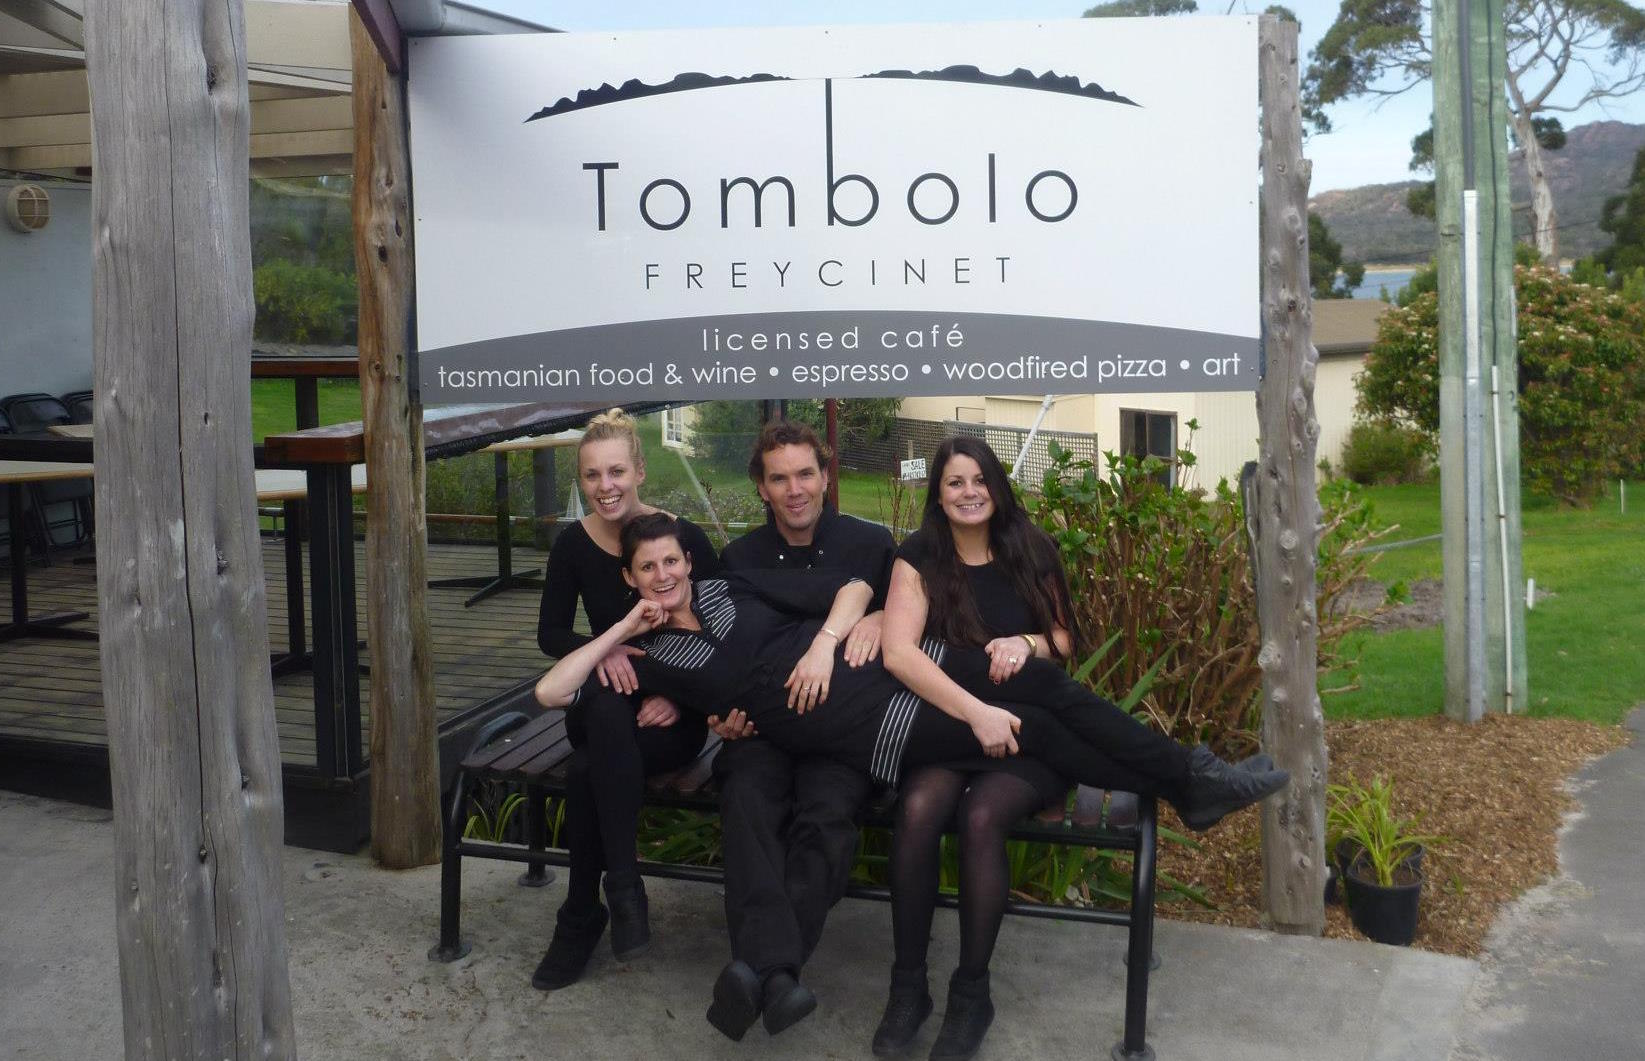 Tombolo Freycinet opening day way back when!